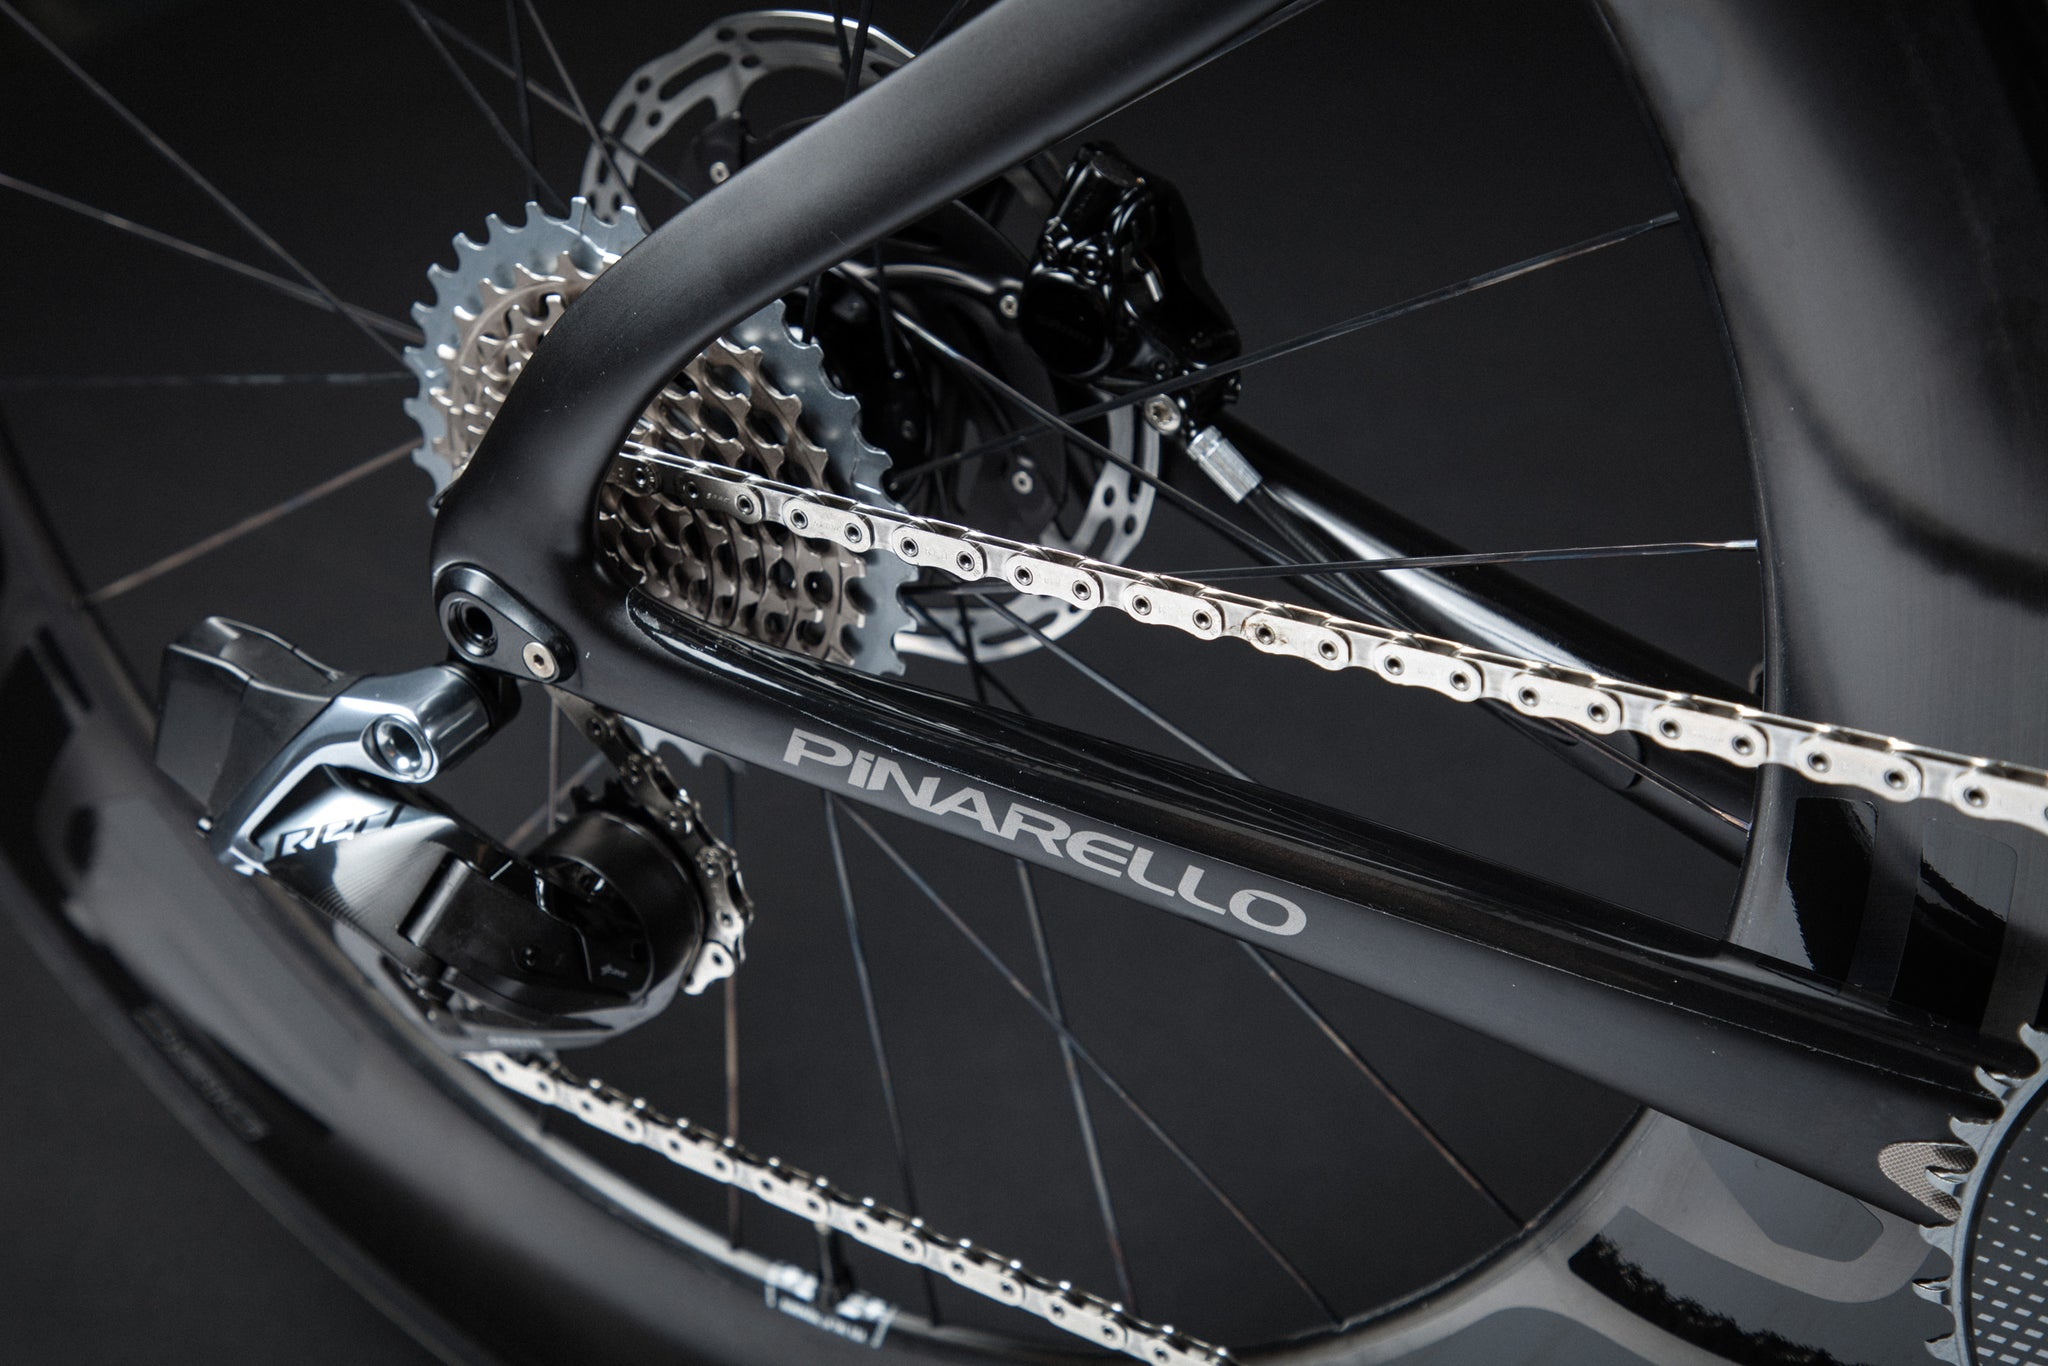 A Blacked Out Pinarello Bolide Gallery chainstay